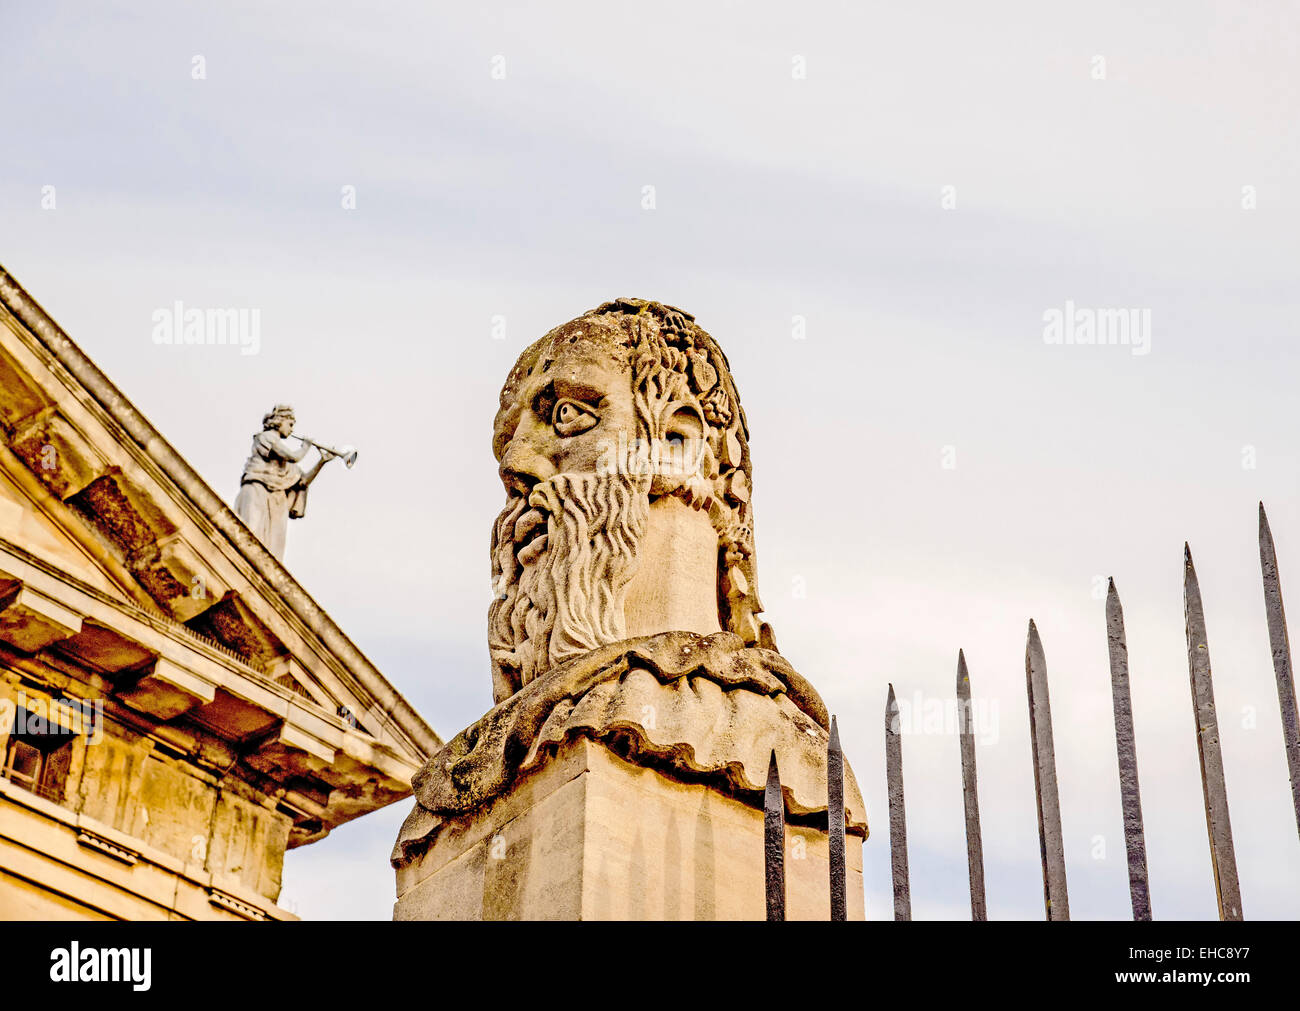 Busts of the Emperor's (or Apostles') Heads outside the Sheldonian Theatre in Oxford Stock Photo